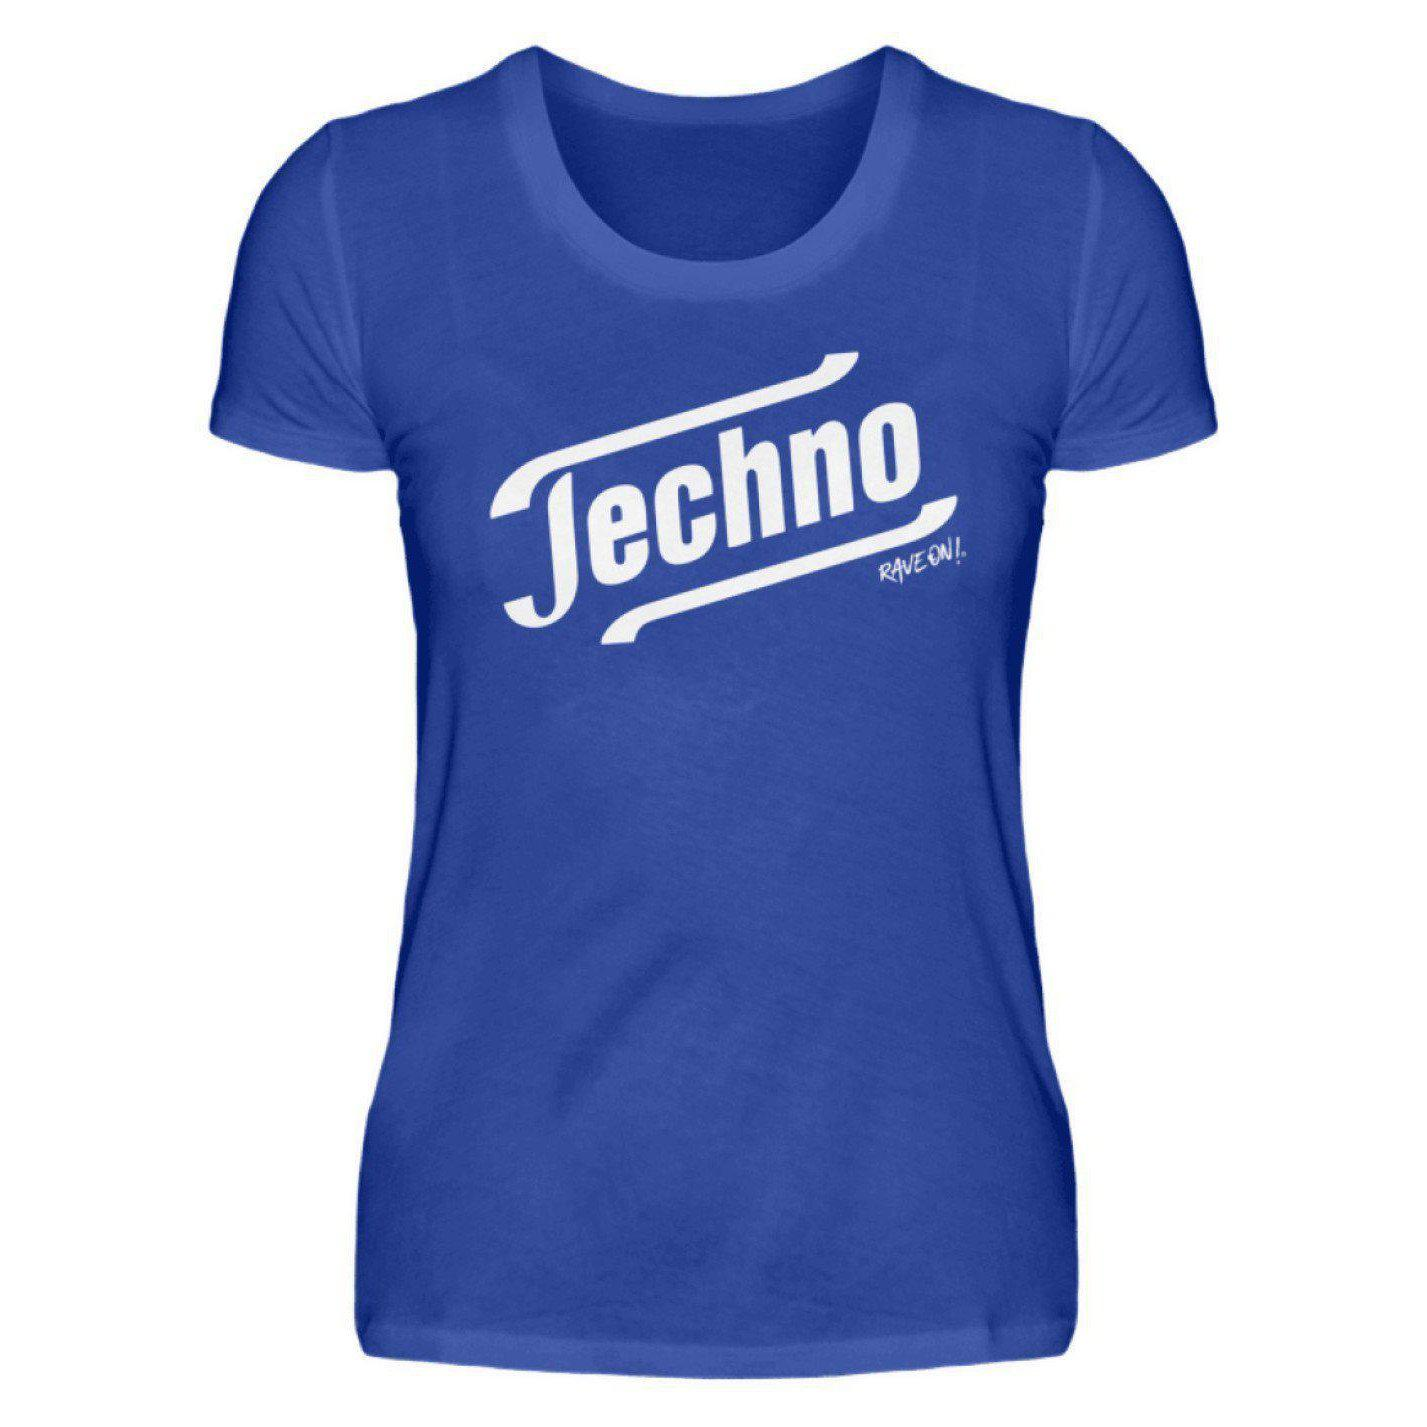 Techno - Tempo Rave On!® T-Shirt - Damenshirt-Damen Basic T-Shirt-Neonblau-S-Rave-On! I www.rave-on.shop I Deine Rave & Techno Szene Shop I apparel, brand, Design - Techno - Tempo Rave On!® T-Shirt, font, Funny, i heart raves, meme, music, on, On!®, rave, rave apparel, rave clothes, rave clothing, rave fashion, rave gear, rave on, Rave On!®, rave shop, rave t shirt, rave wear, raver, techno, techno apparel, Tempo, ® - Sexy Festival Streetwear , Clubwear & Raver Style